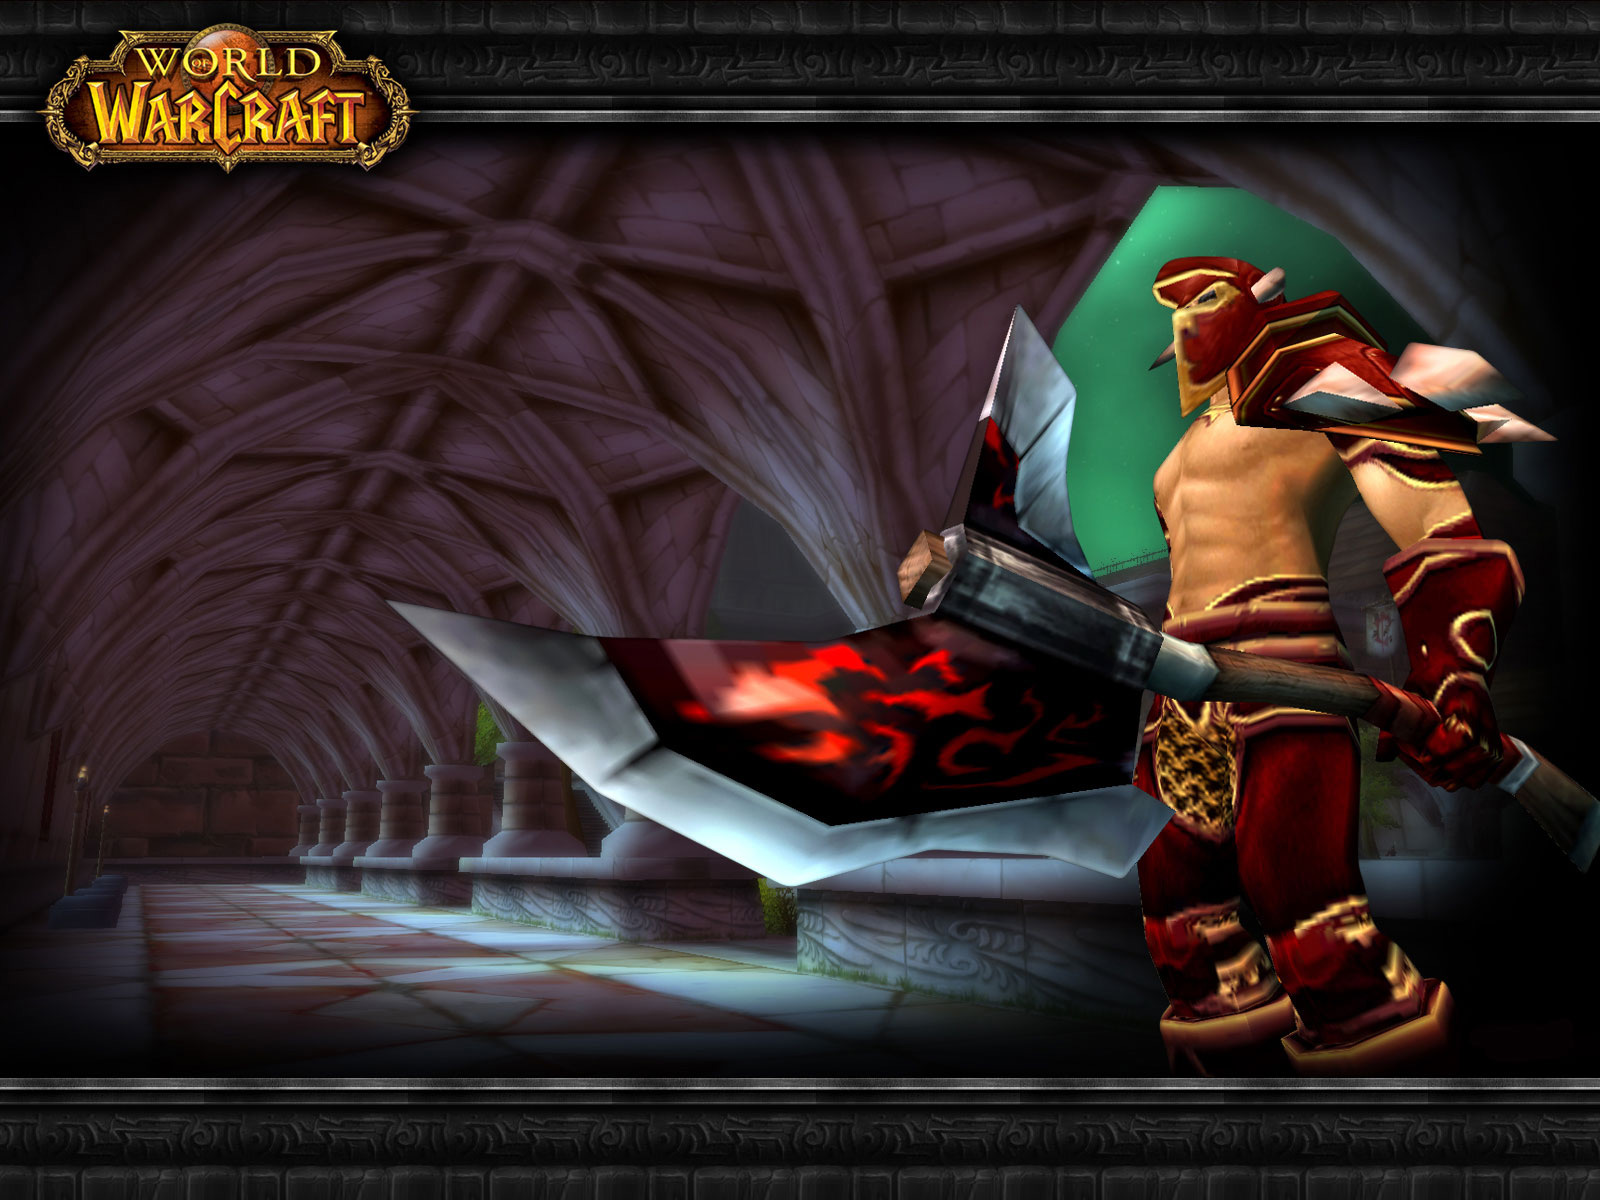 Wallpaper Word of Warcraft WoW scarlet crusader